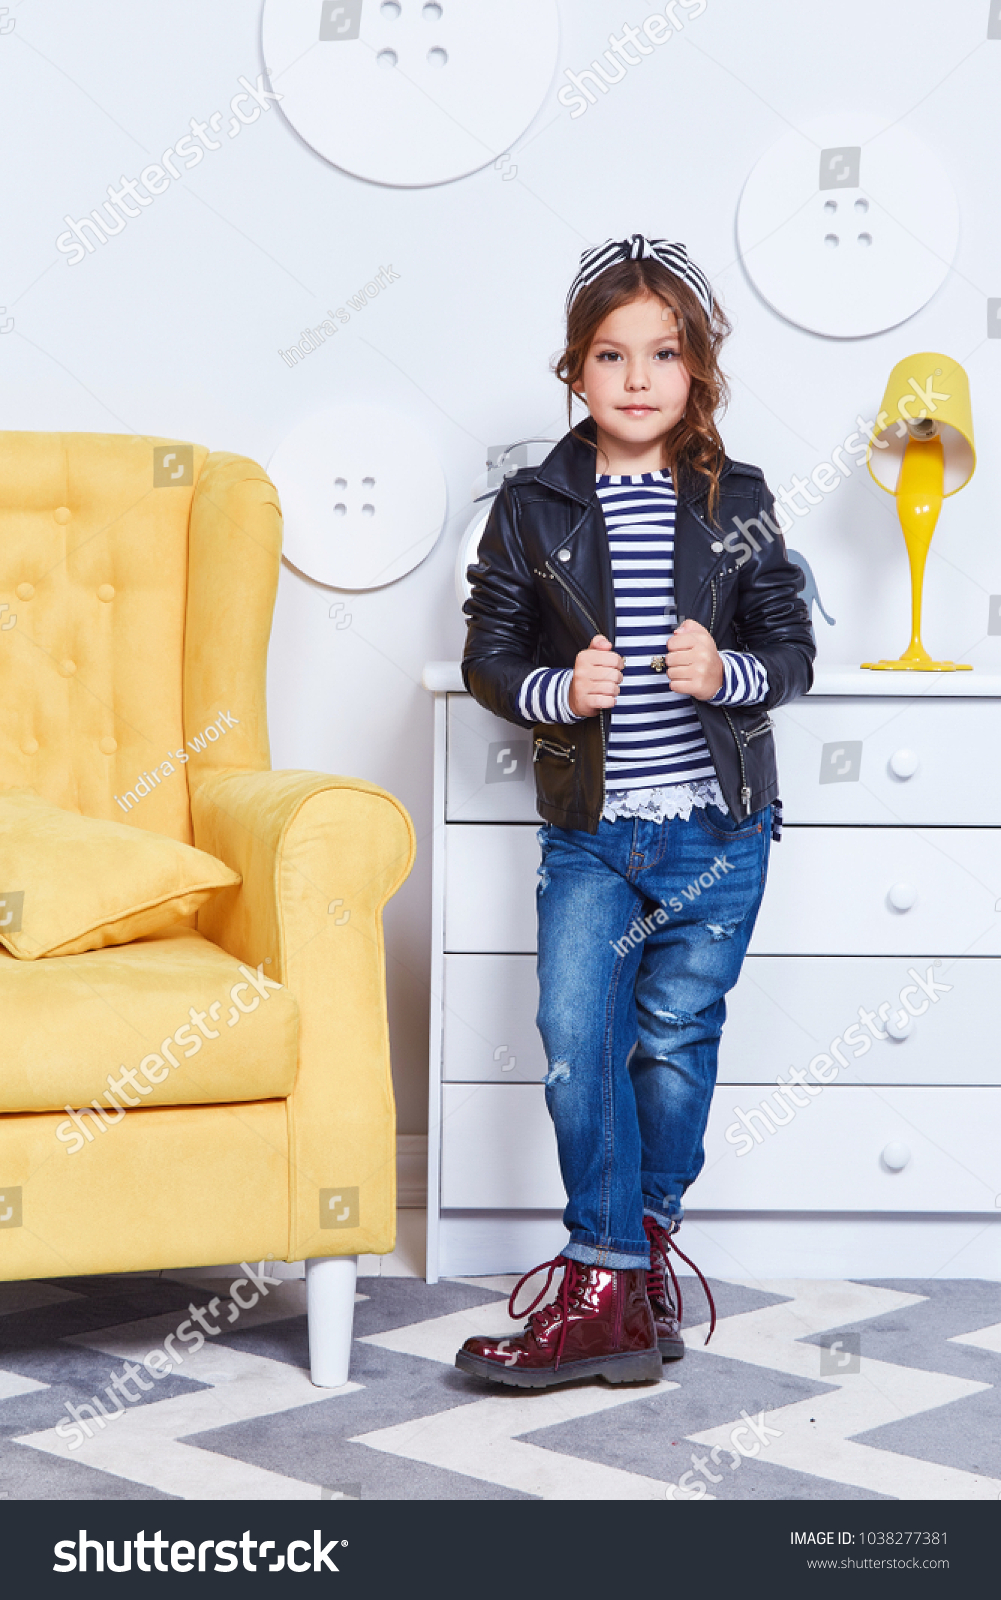 b3d862eee15b Fashion Style Clothes Child Small Little Stock Photo (Edit Now ...